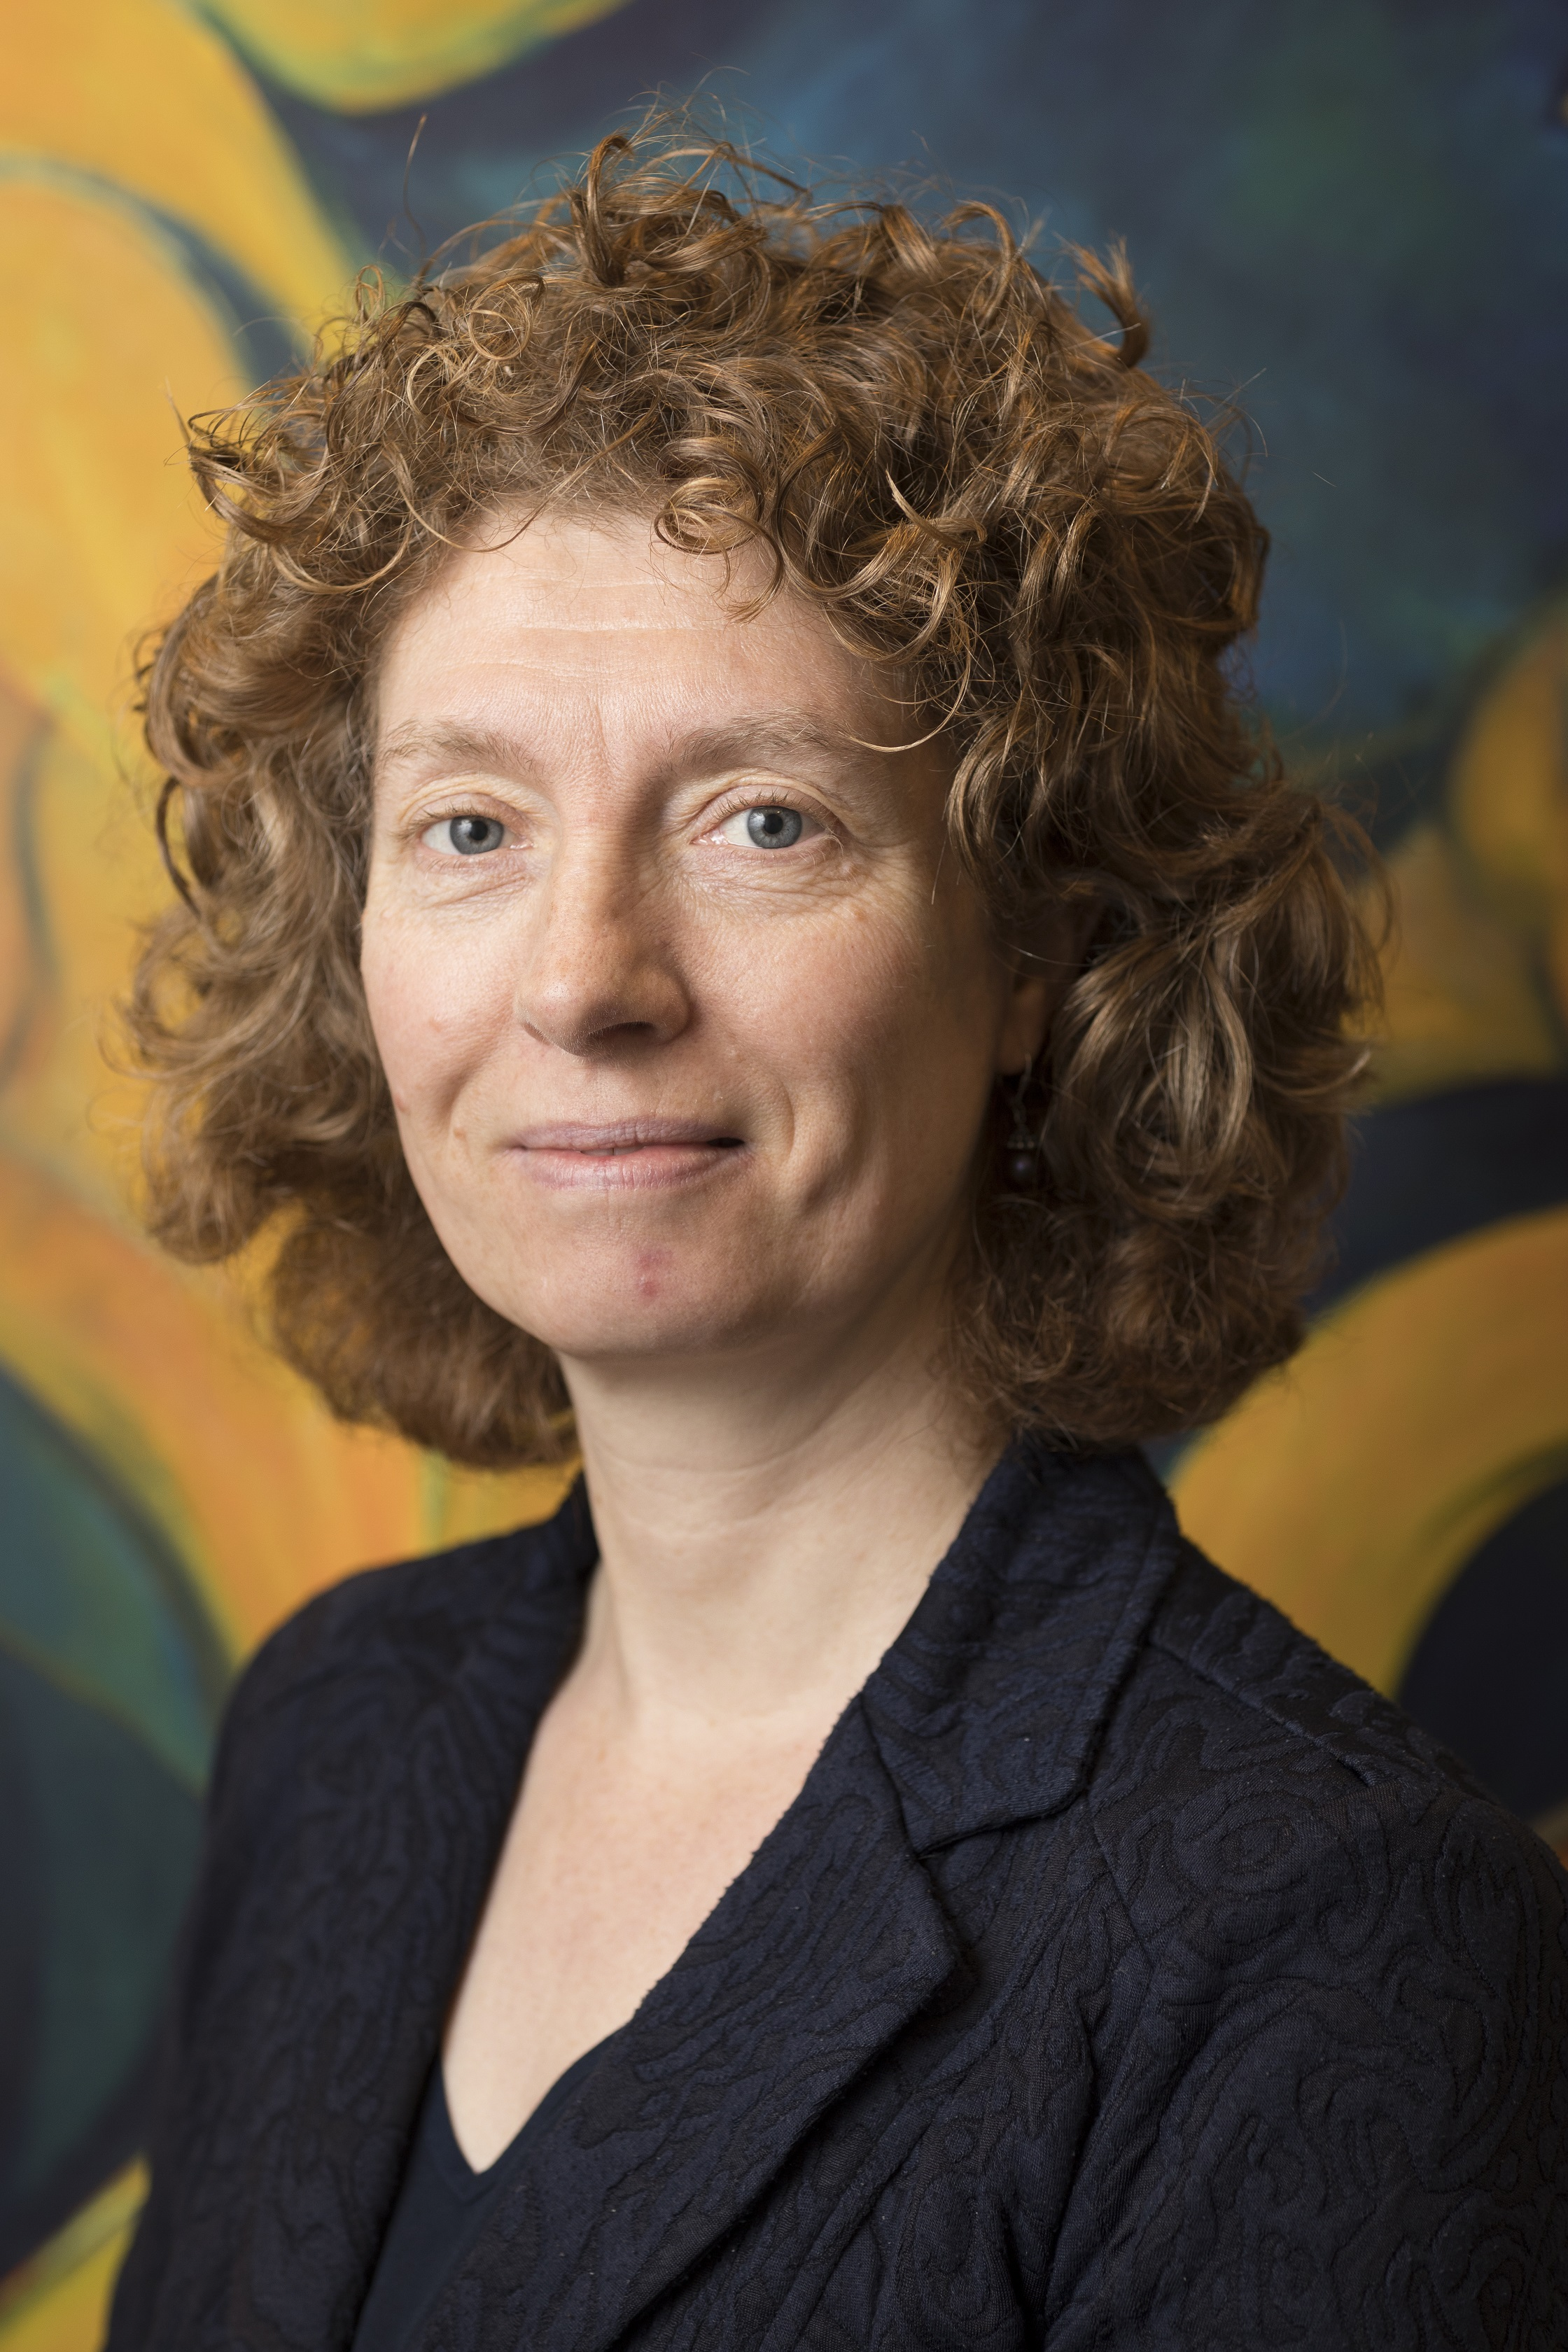 Photo of Anne M. Dijkstra